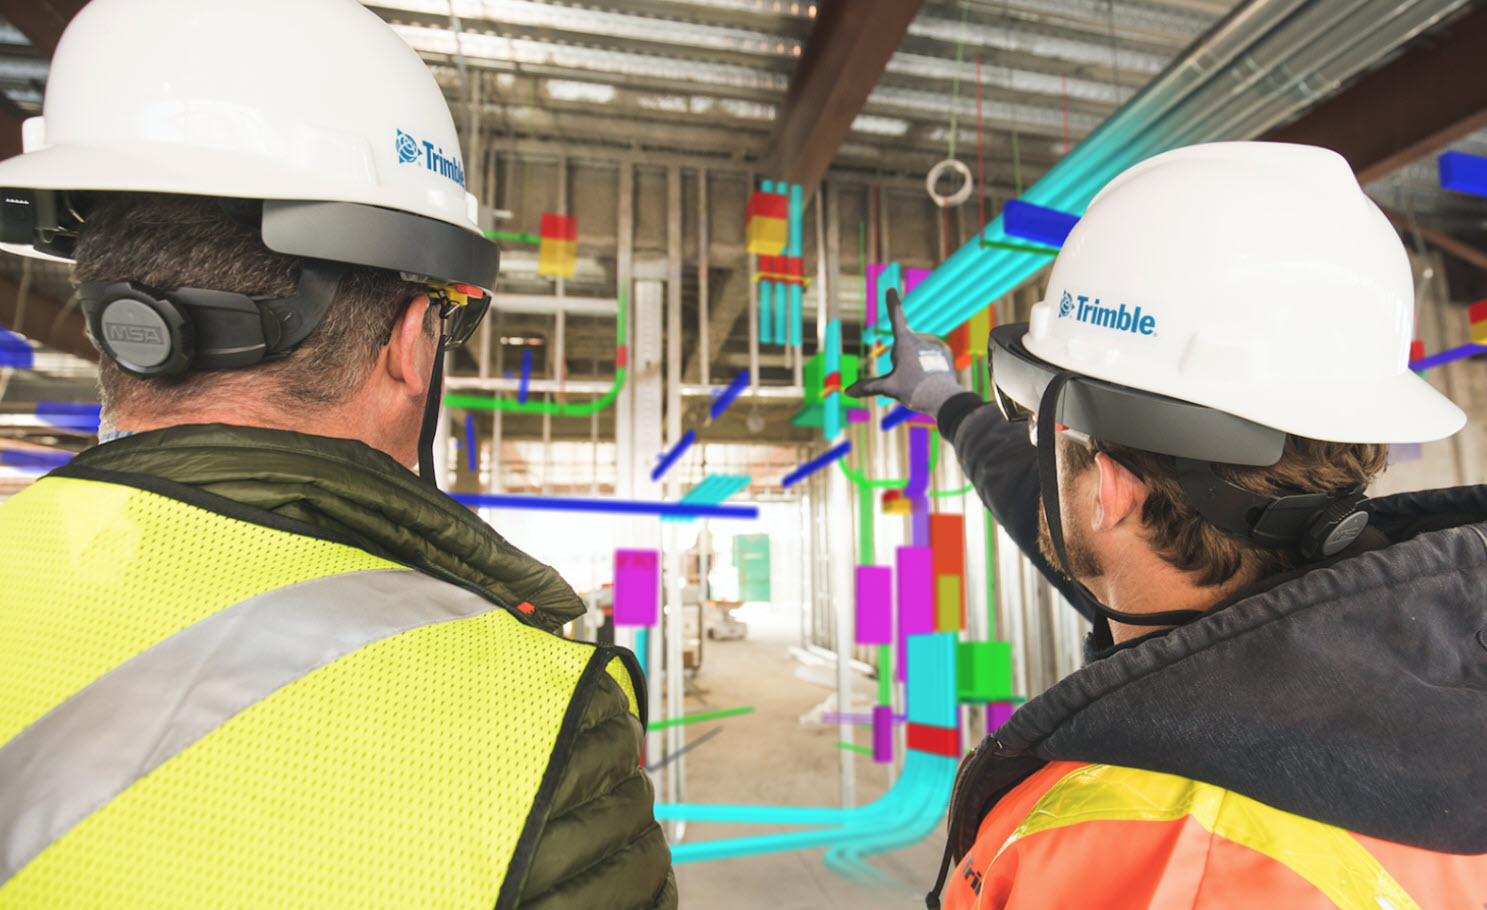 Supervisors can discuss the project and outcome of audits to enable improved processes and installation procedures. As a secondary usage training on installation can also be carried out on the HoloLens.